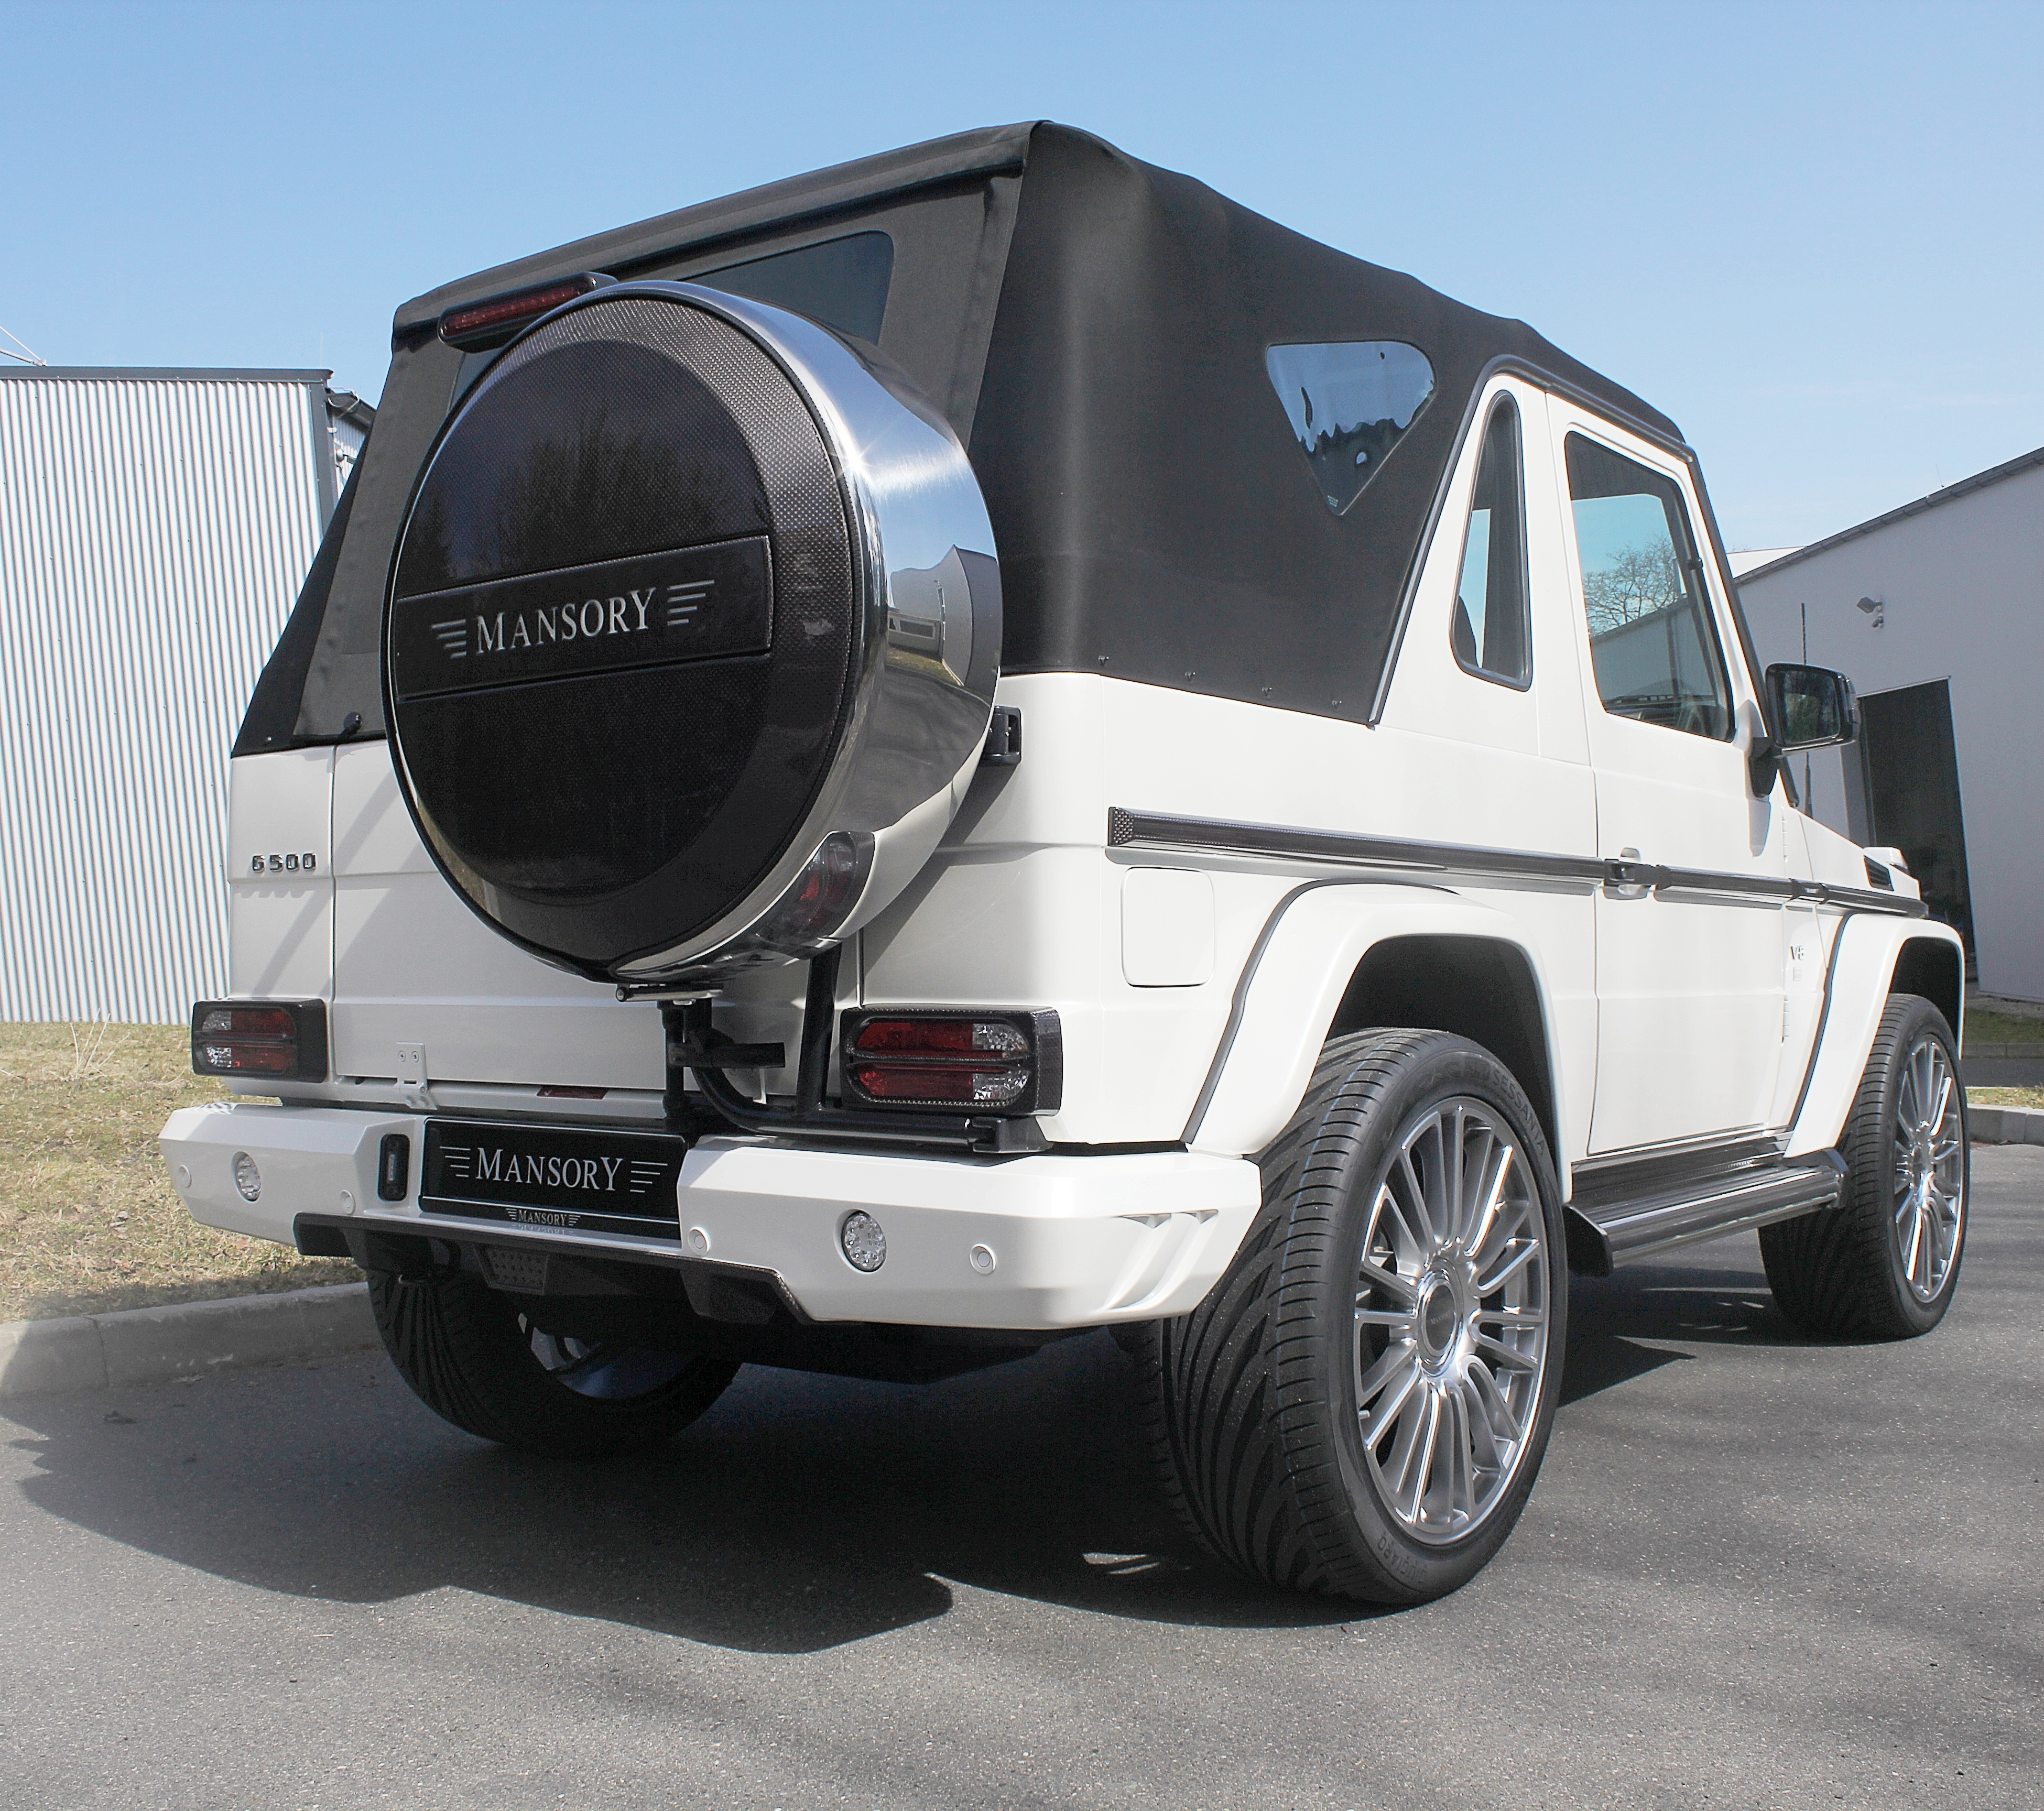 Soft Kit For G Class Cabrio Mansory